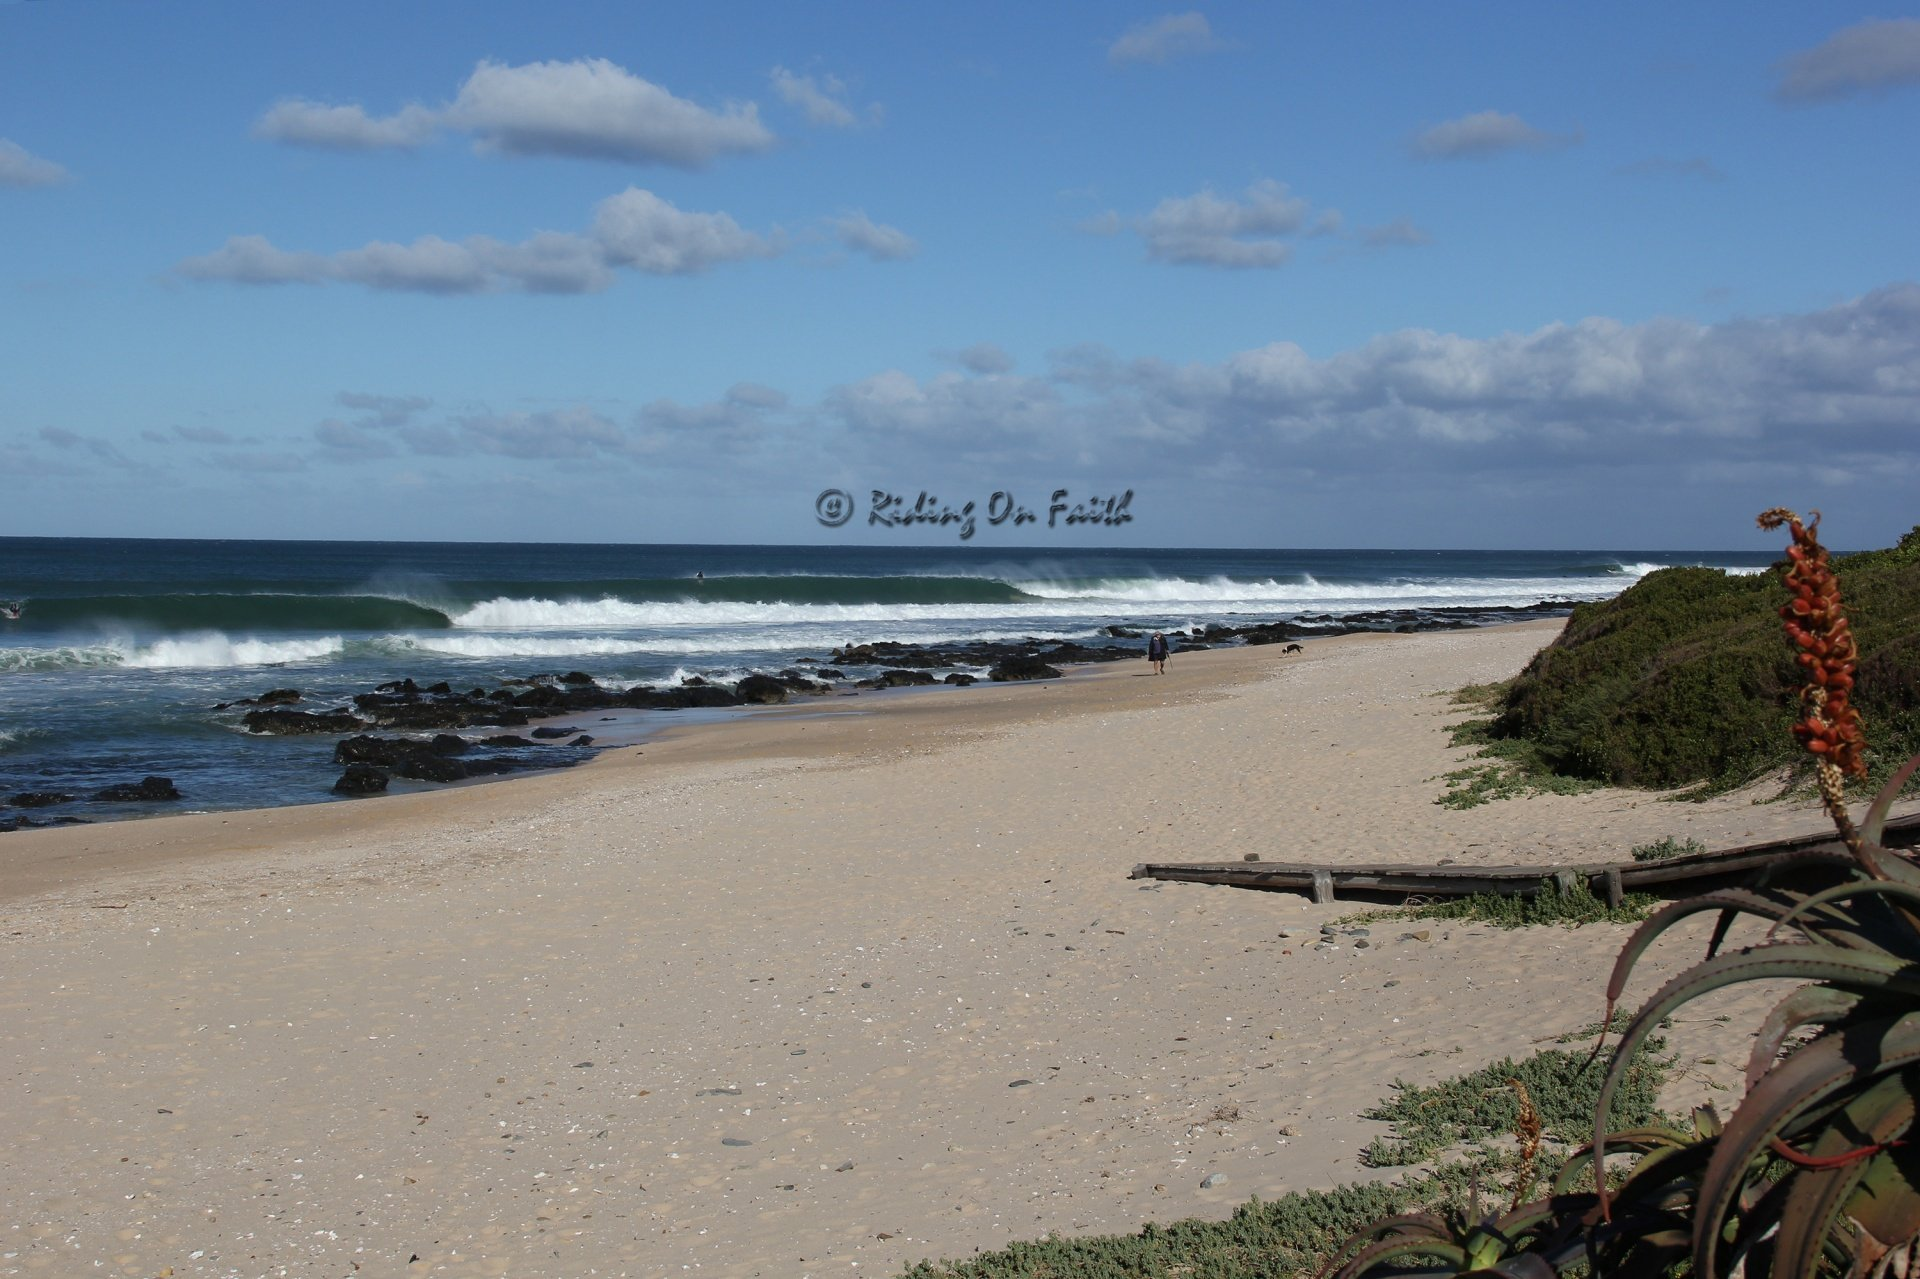 RidingOnFaith 's photo of Jeffreys Bay (J-Bay)